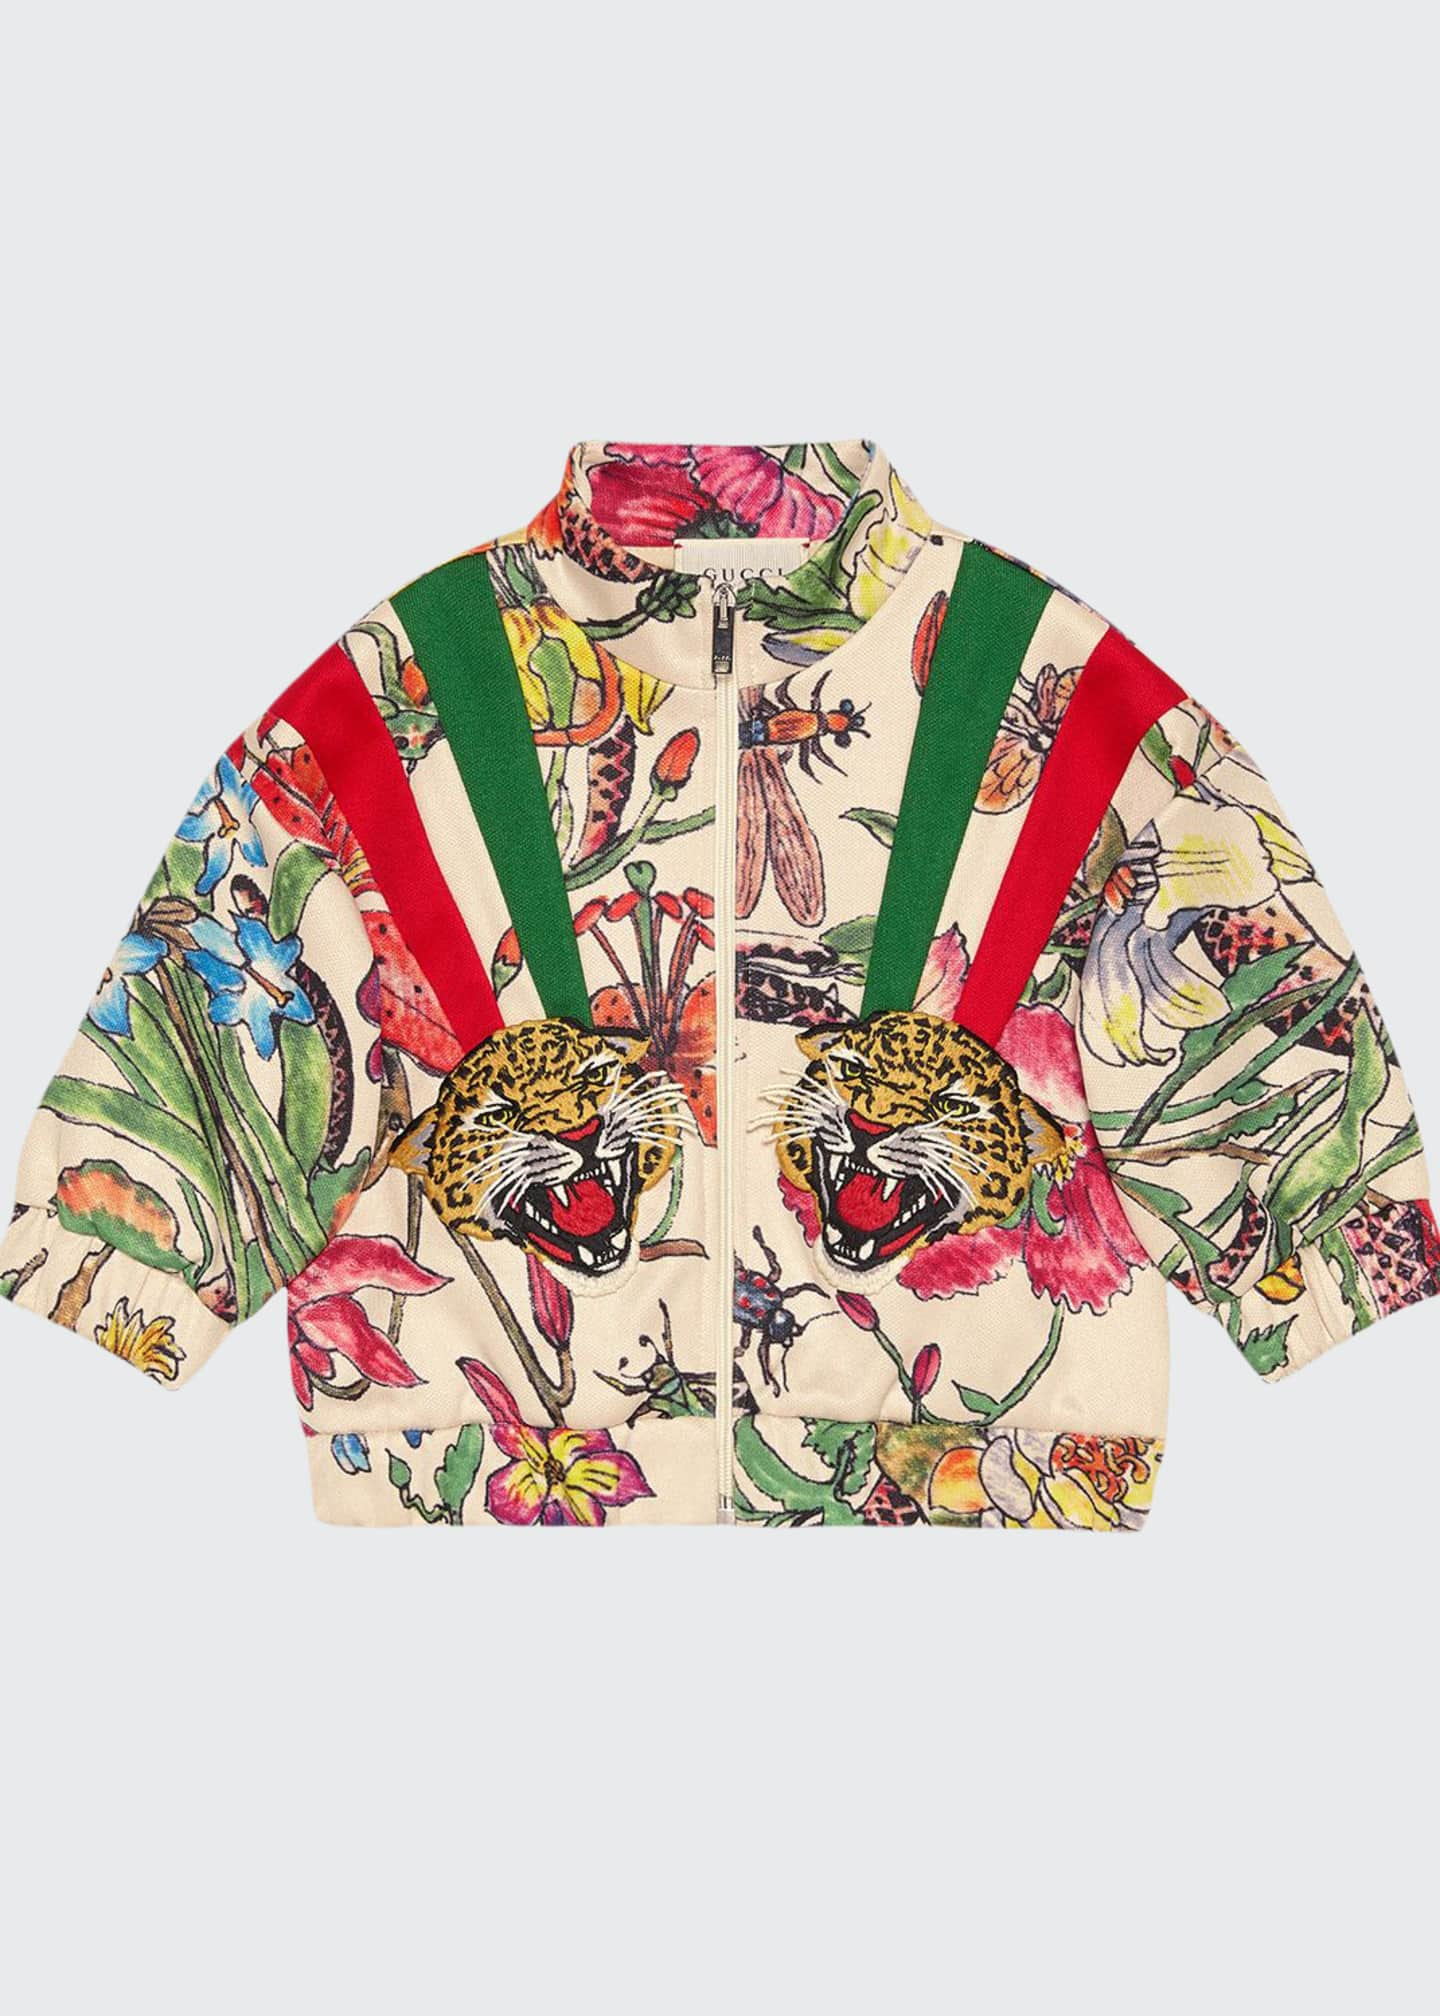 Gucci Floral Zip-Up Sweatshirt w/ Tiger Patches, Size